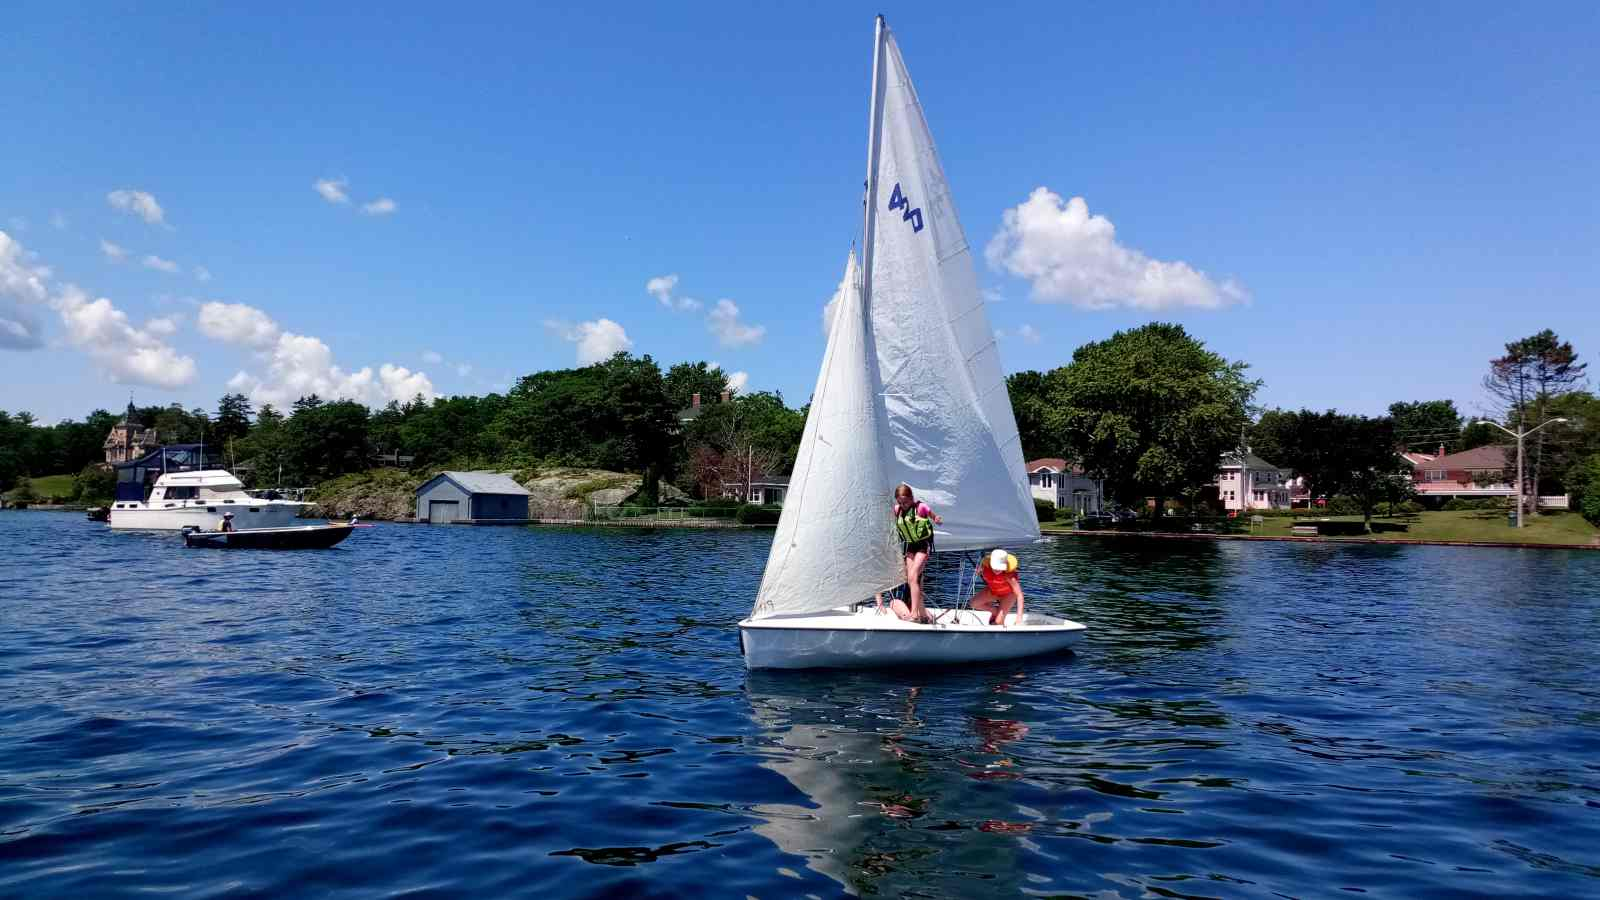 Brockville Yacht Club Sailing school BYC CanSail Kids sailing.jpg